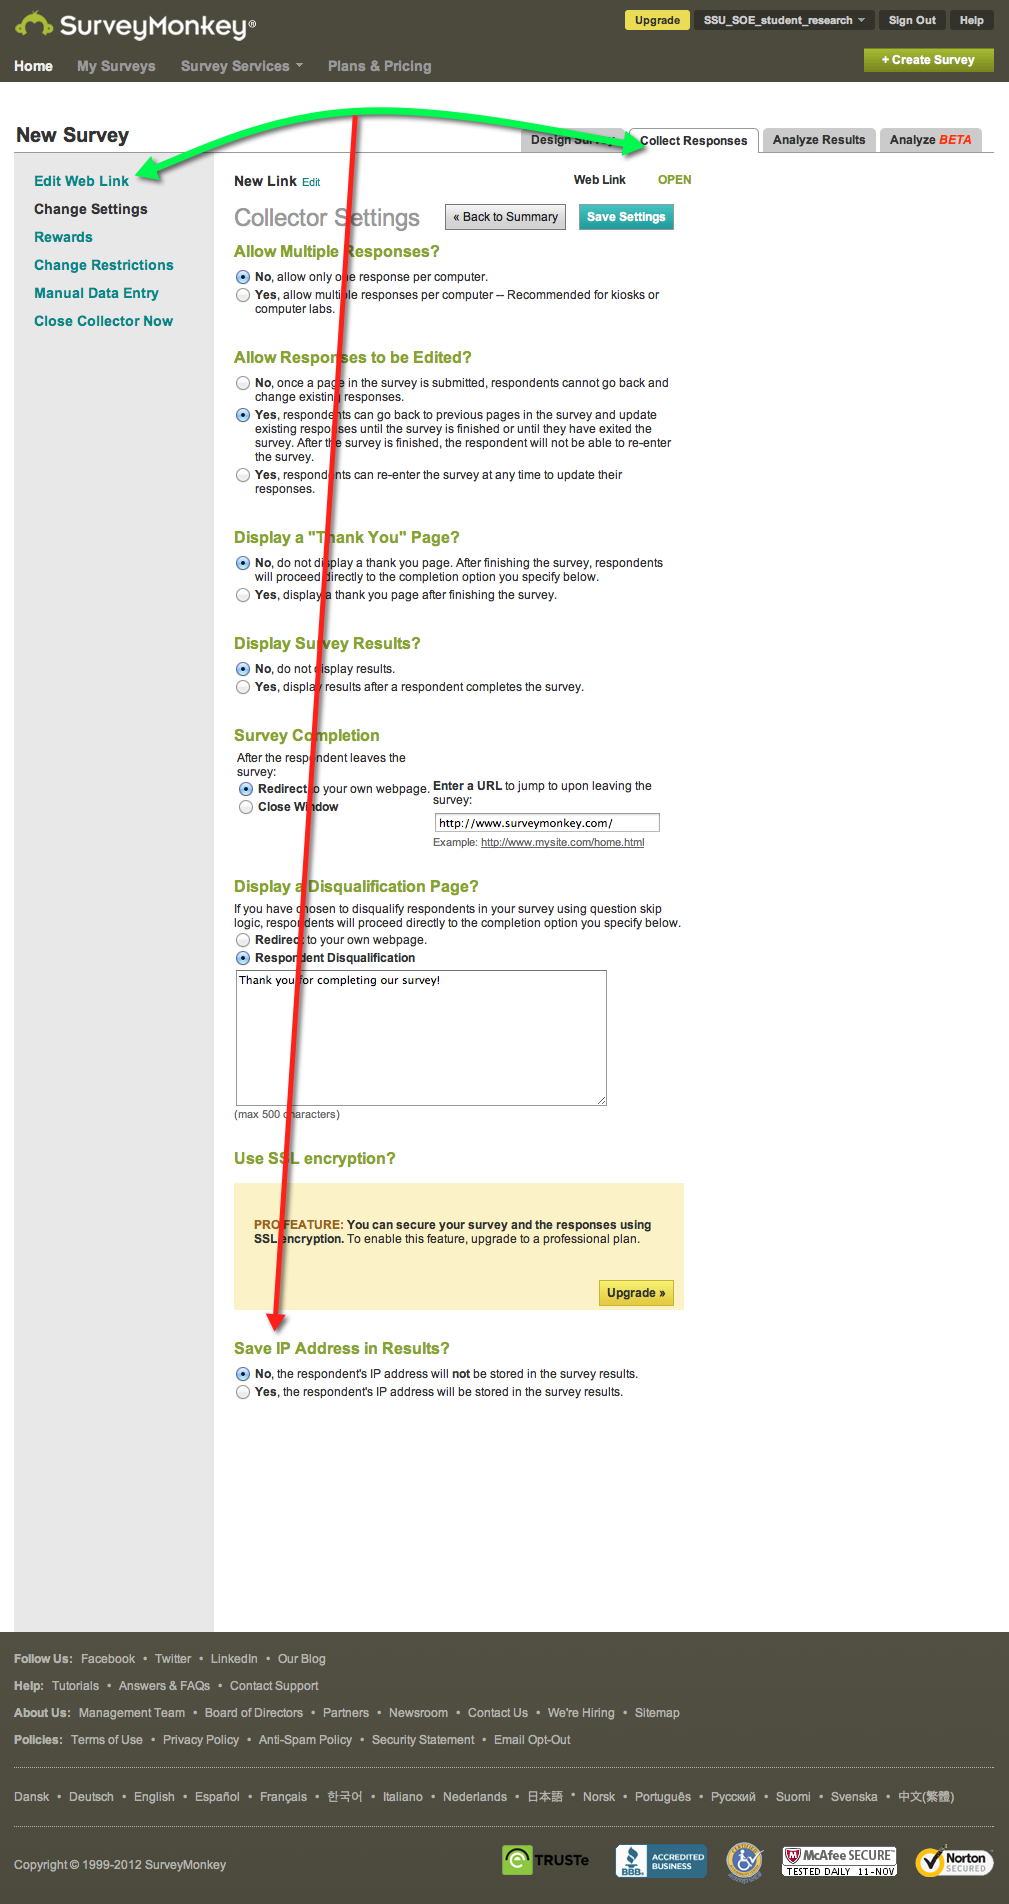 Guidelines for SurveyMonkey and Inviting Participants